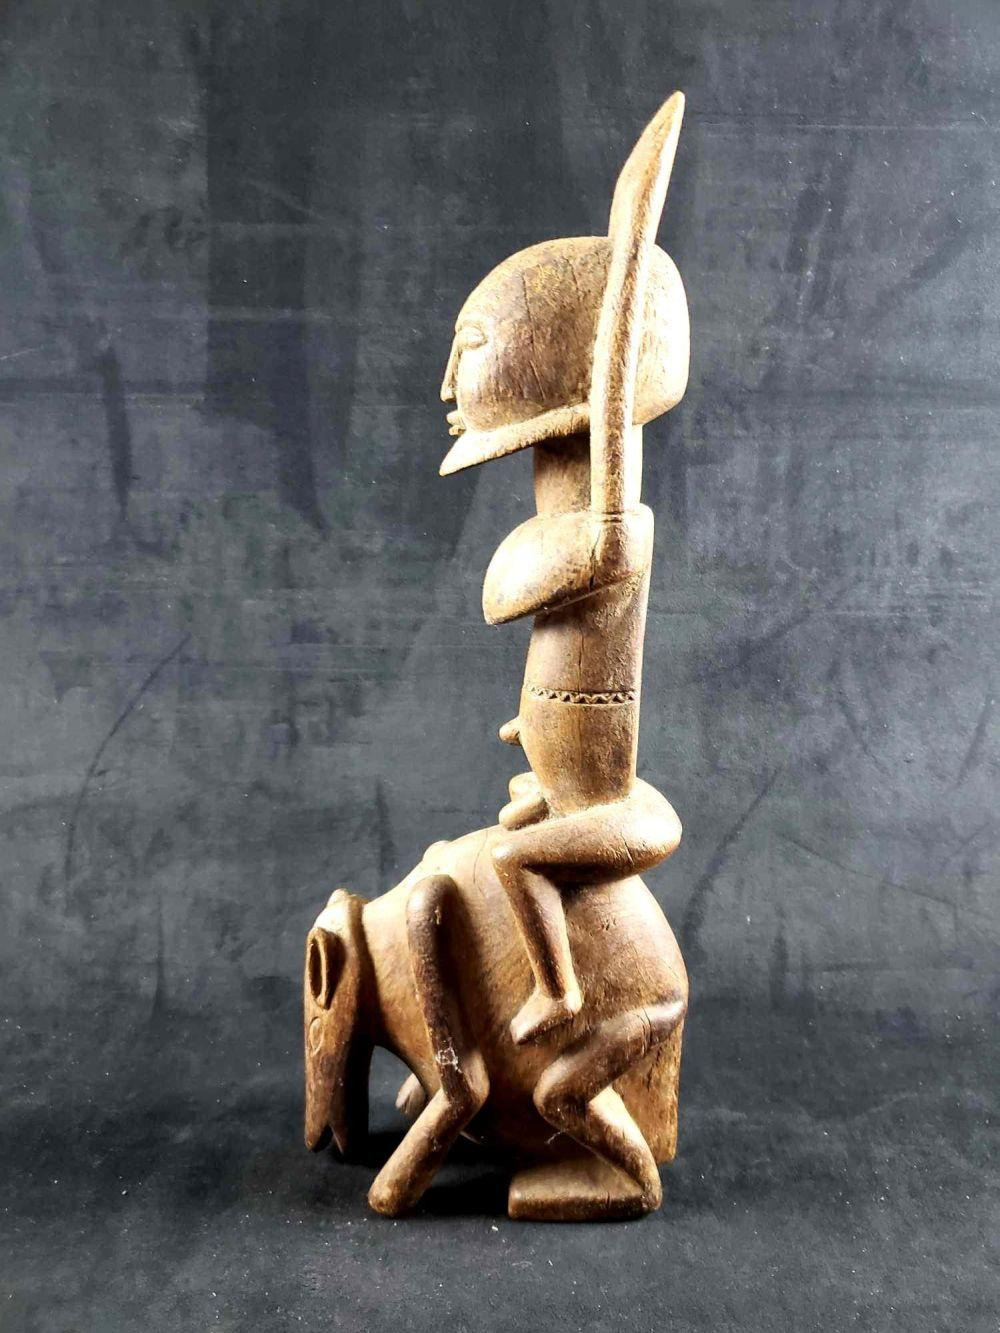 Hand Carved African Man Riding Anteater Sculpture